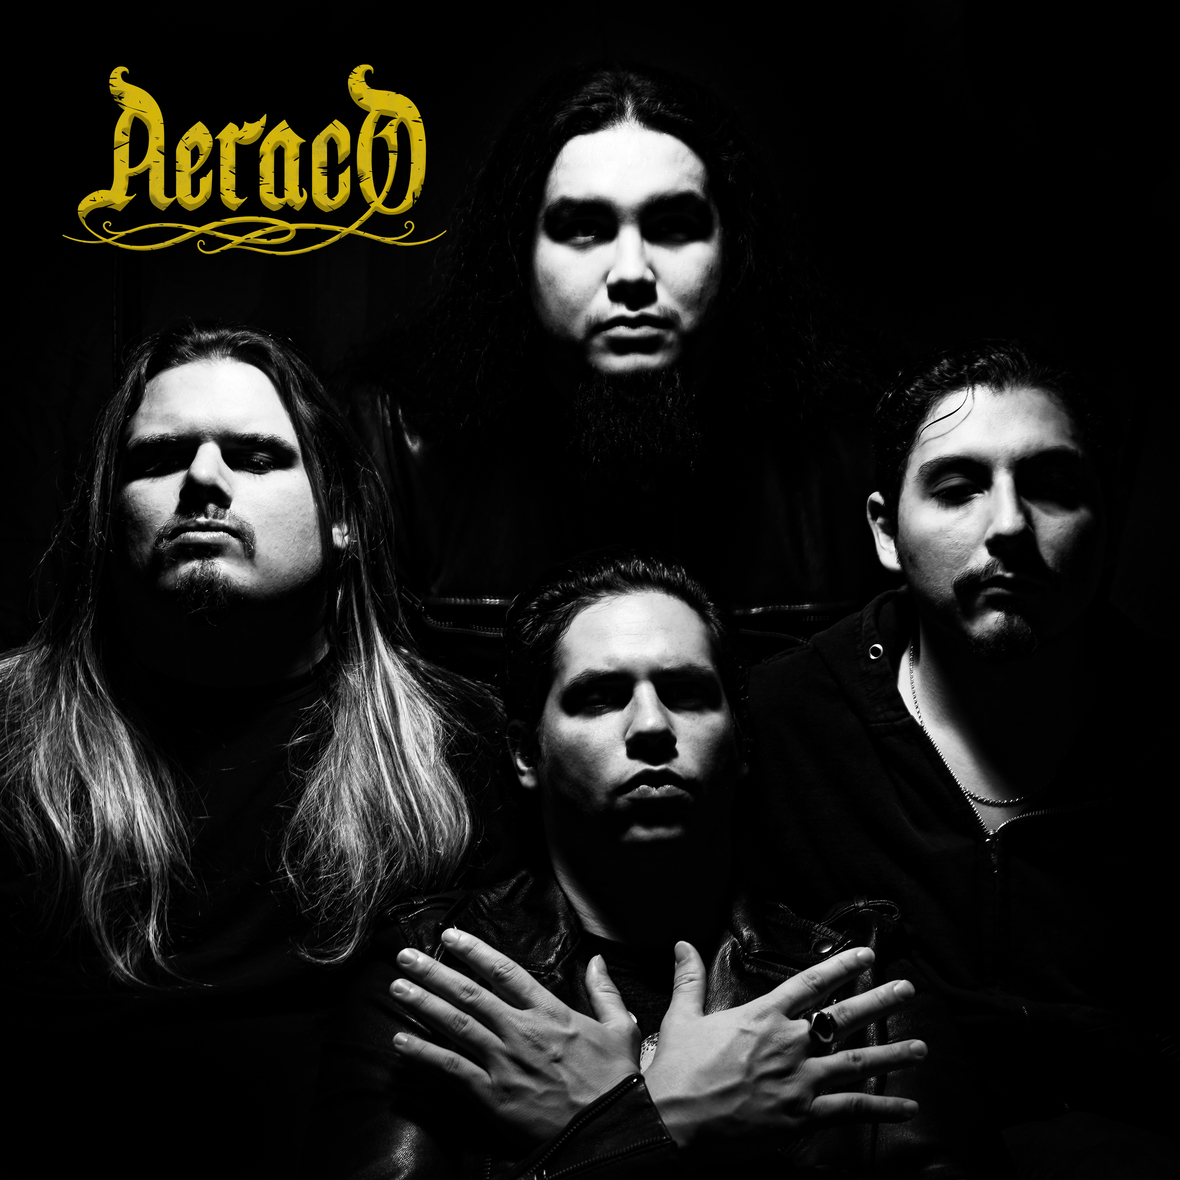 Aeraco cover art we will rock you